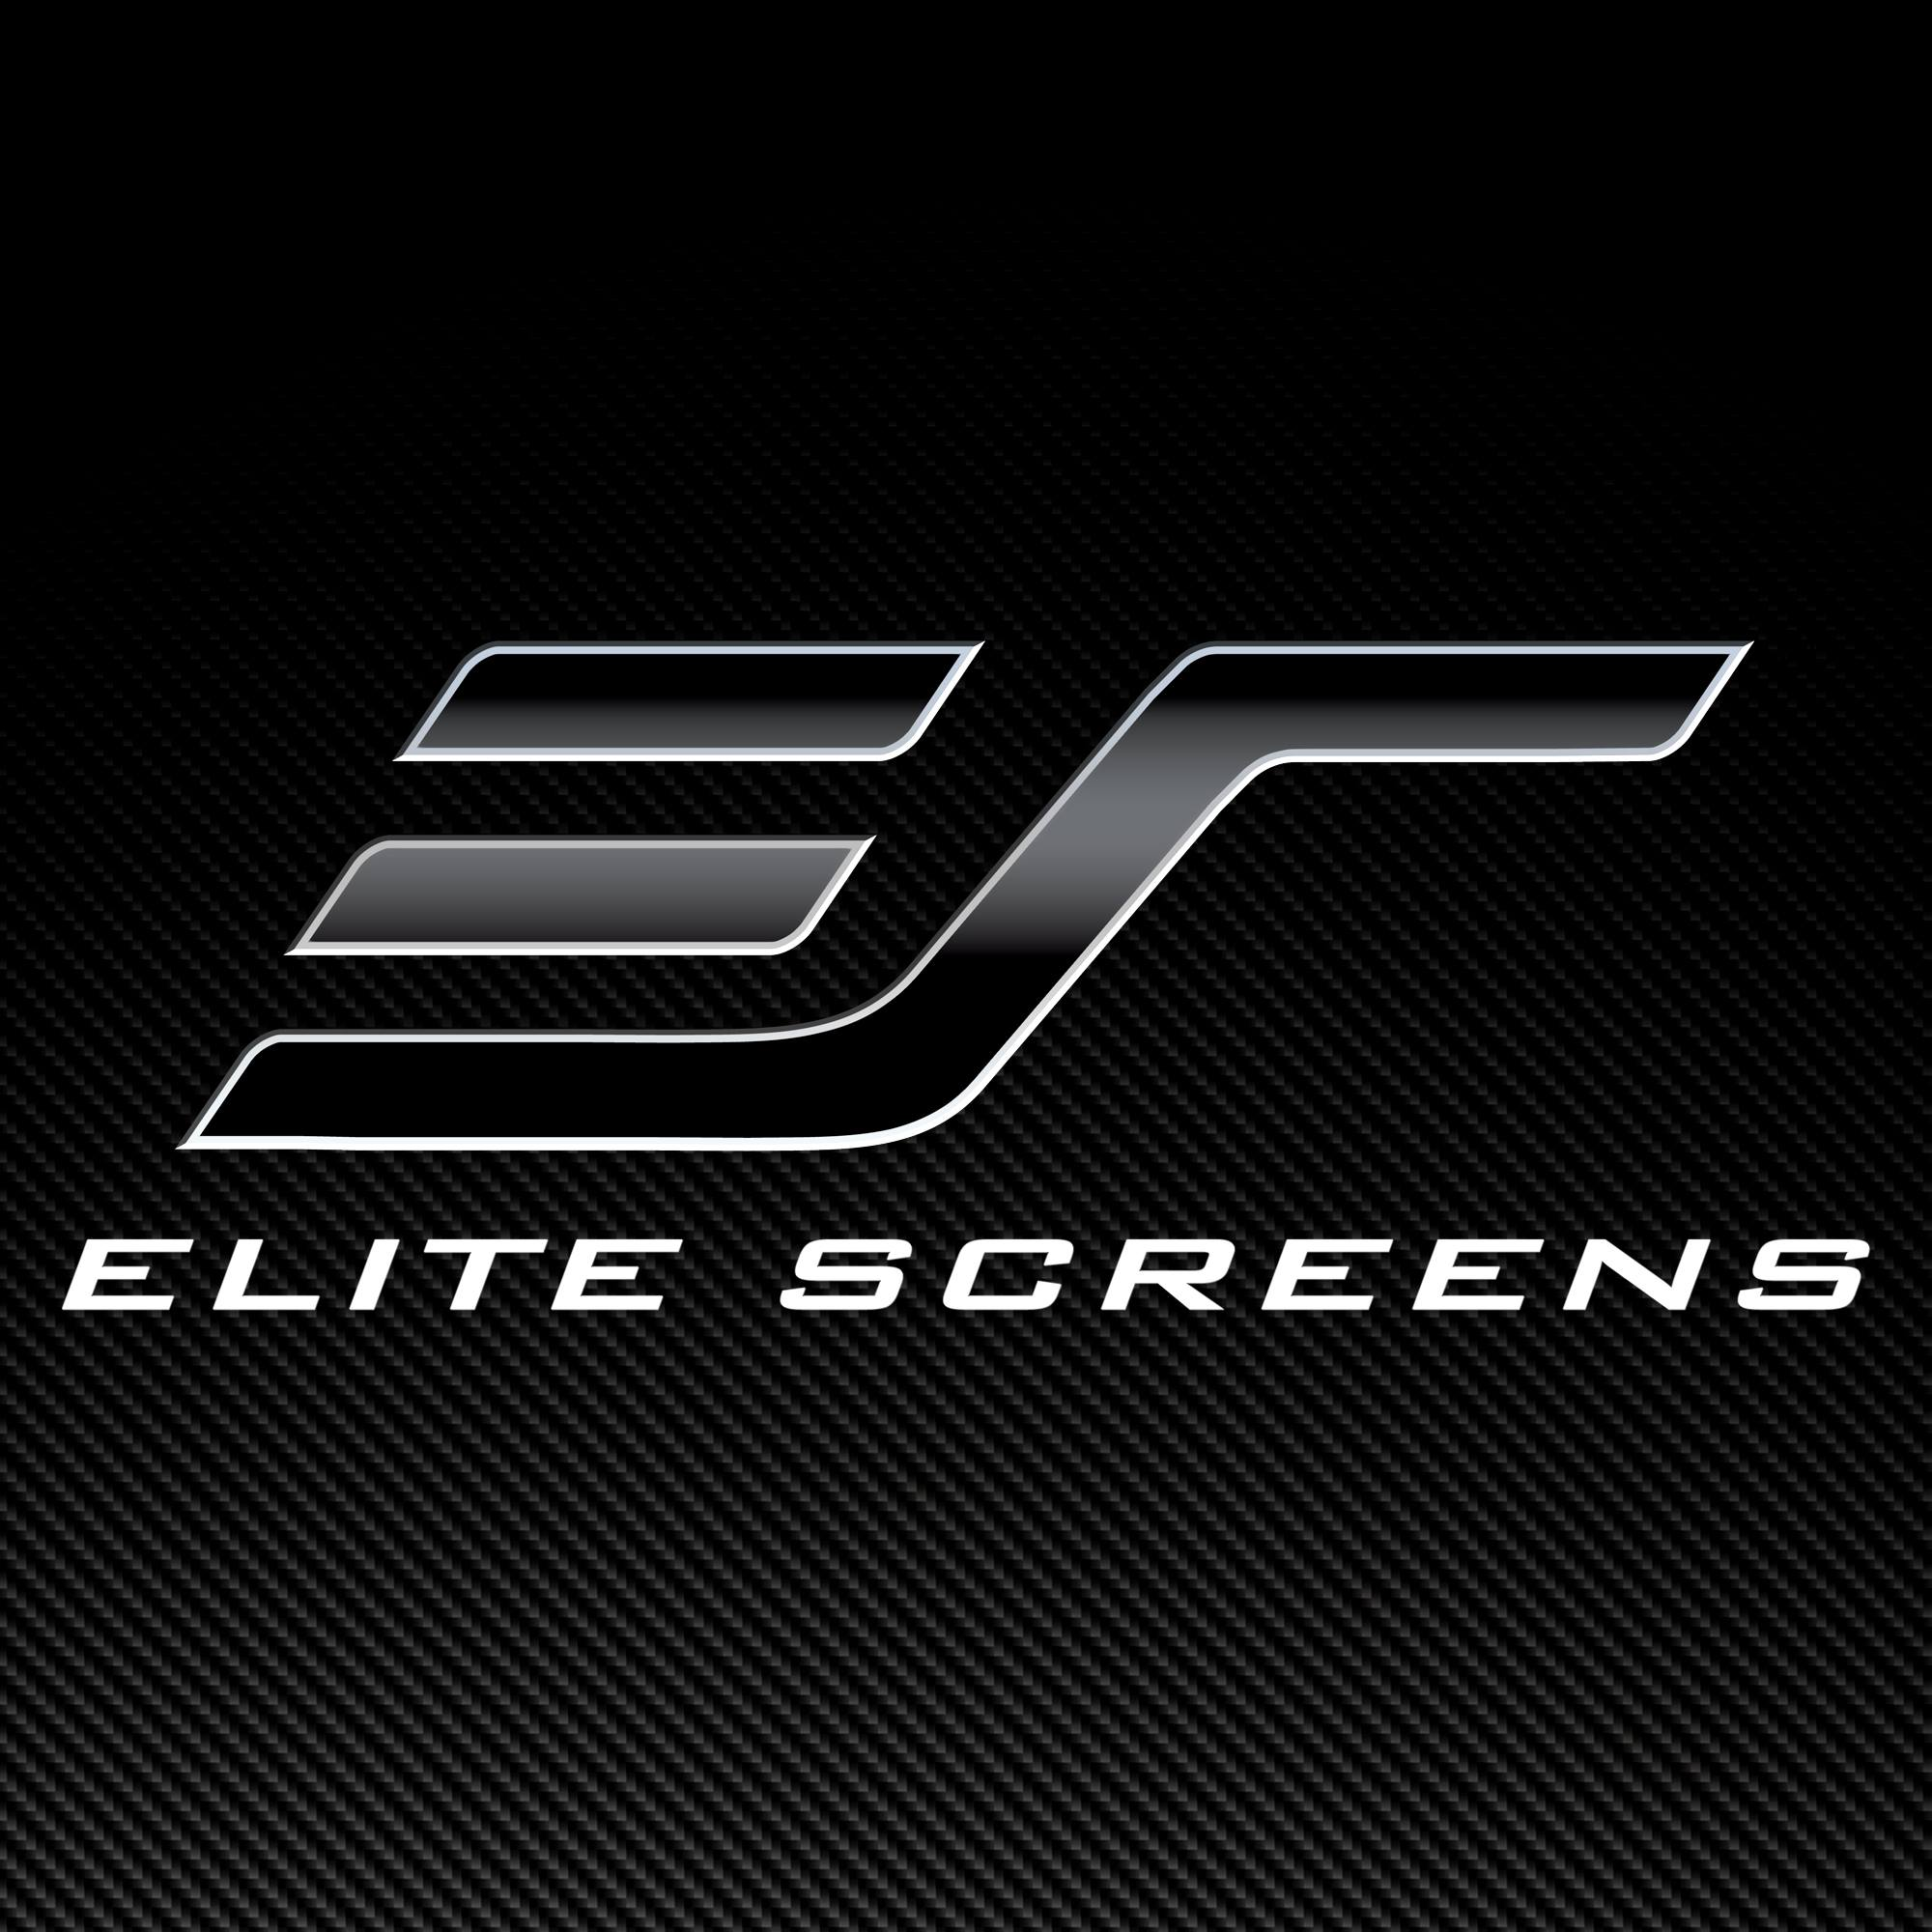 elitescreen